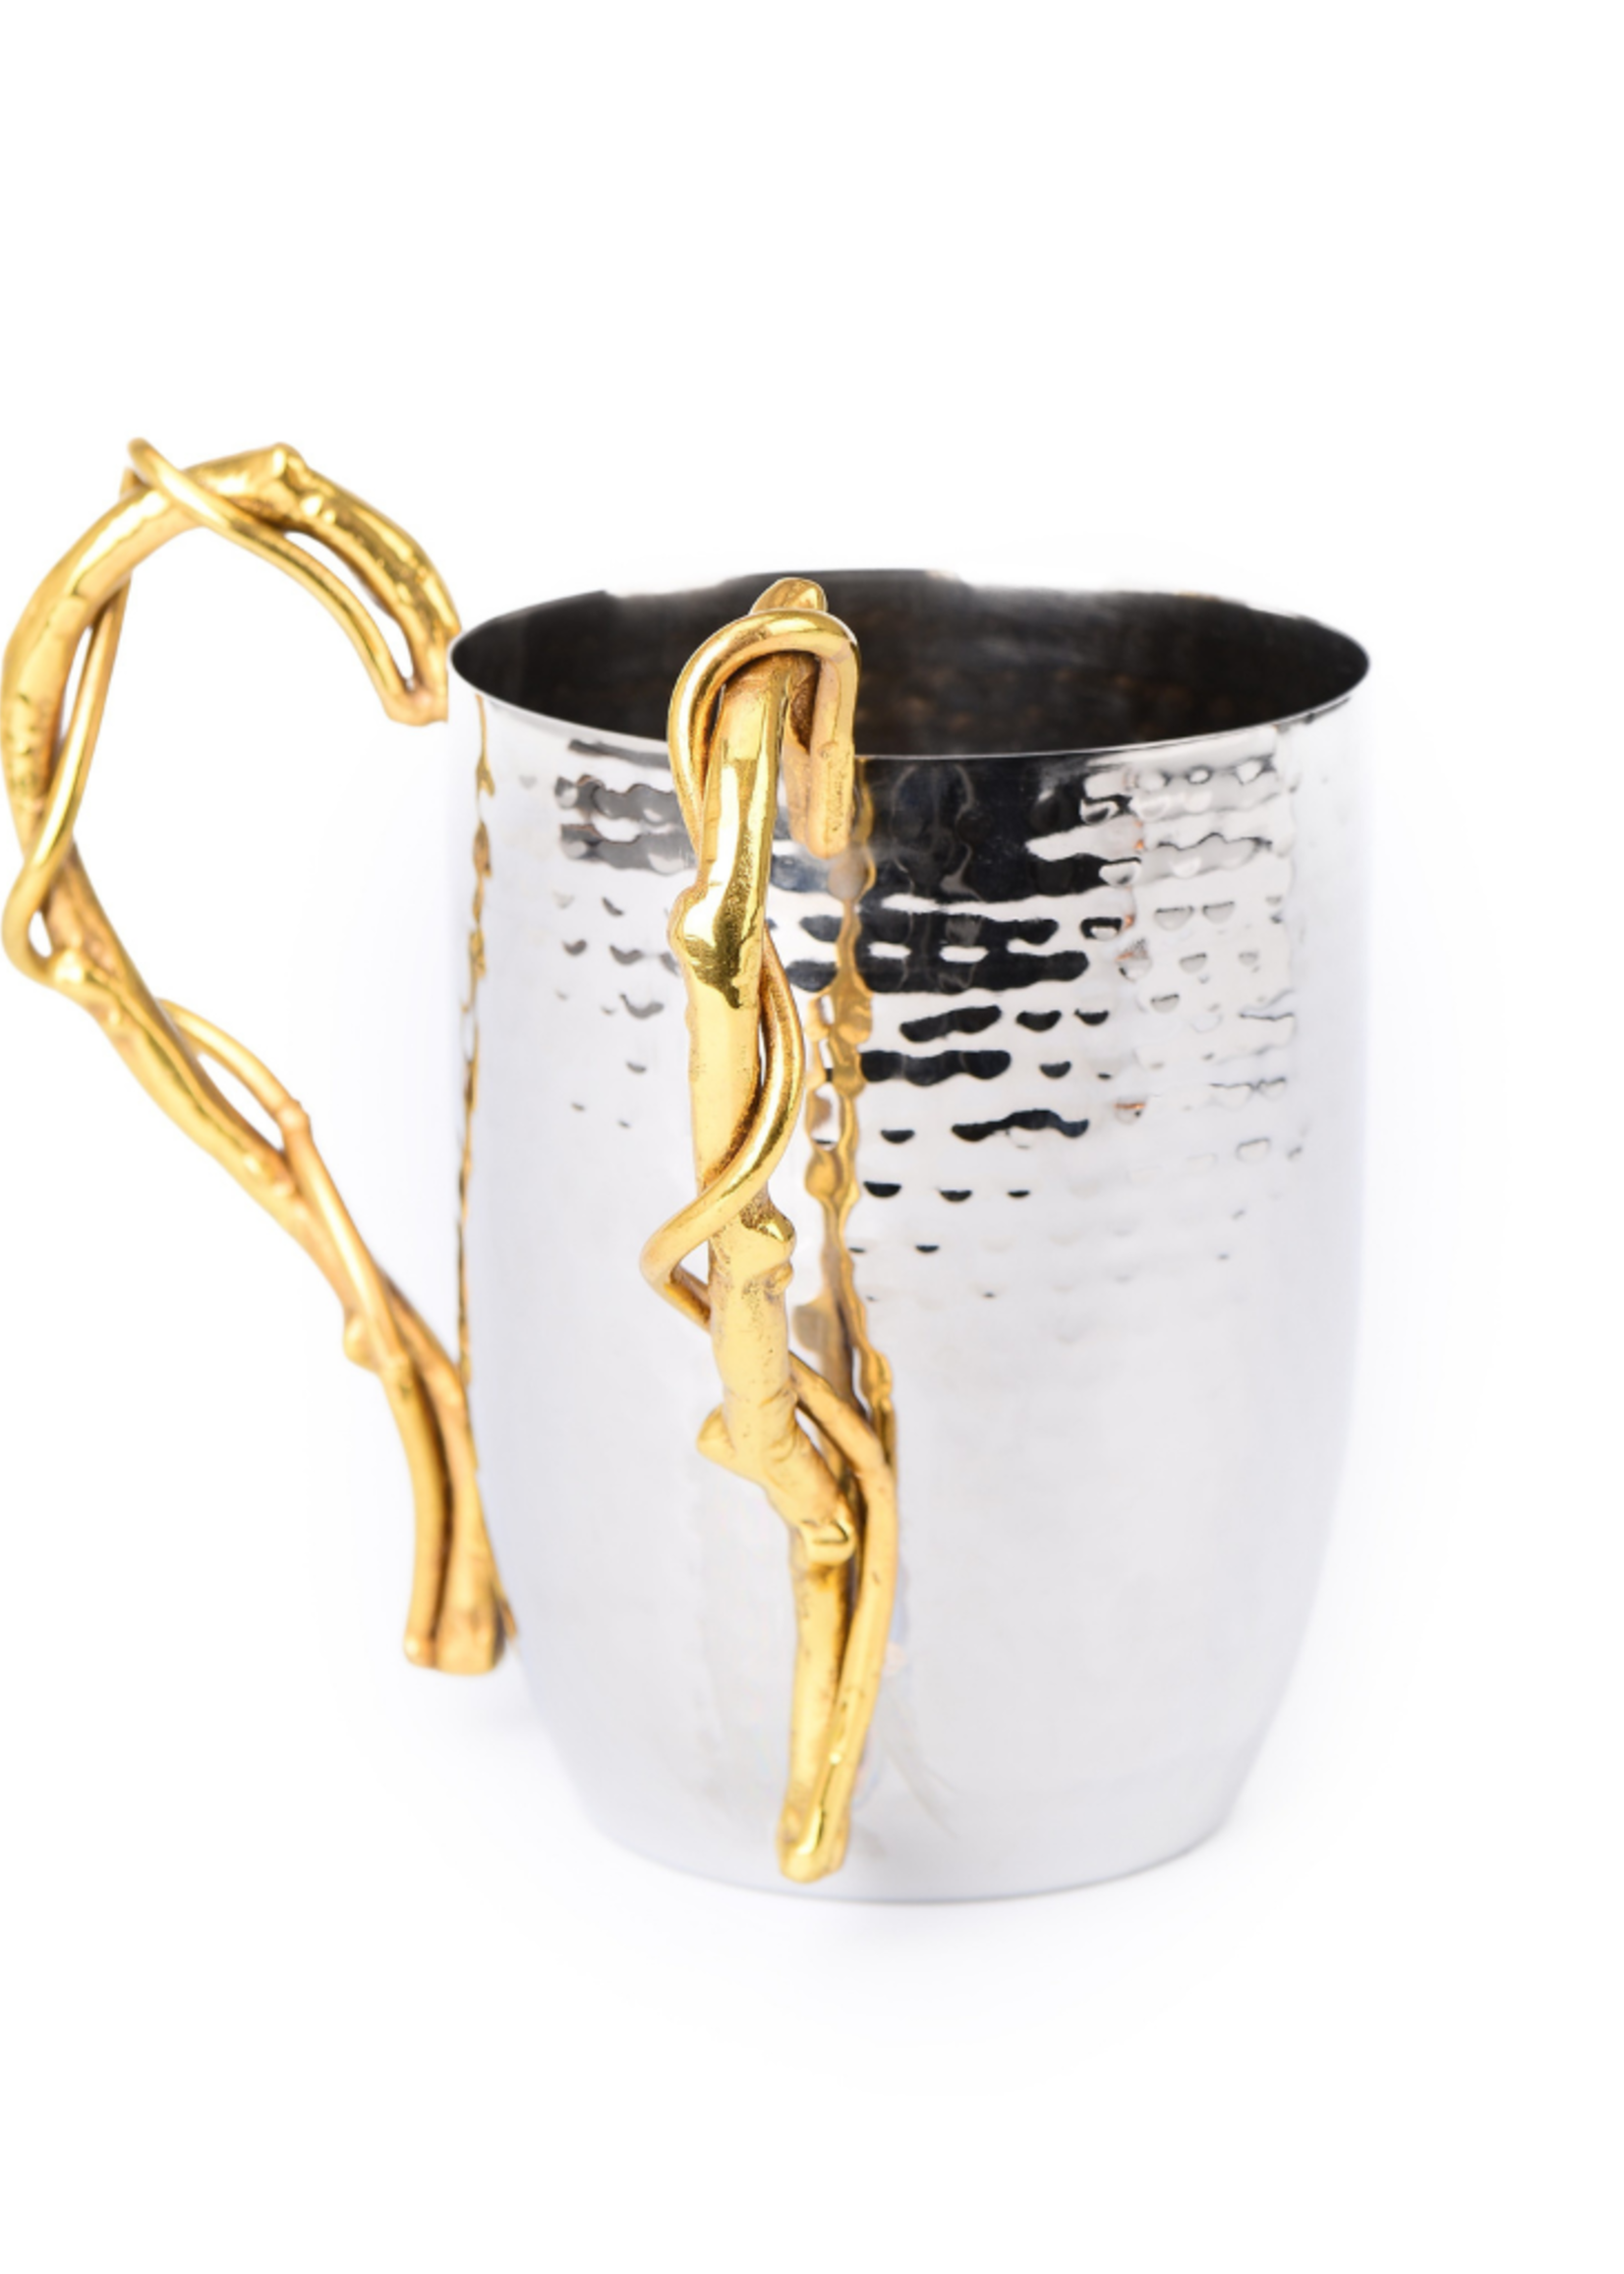 Hammered Stainless Gold Branch Washing Cup